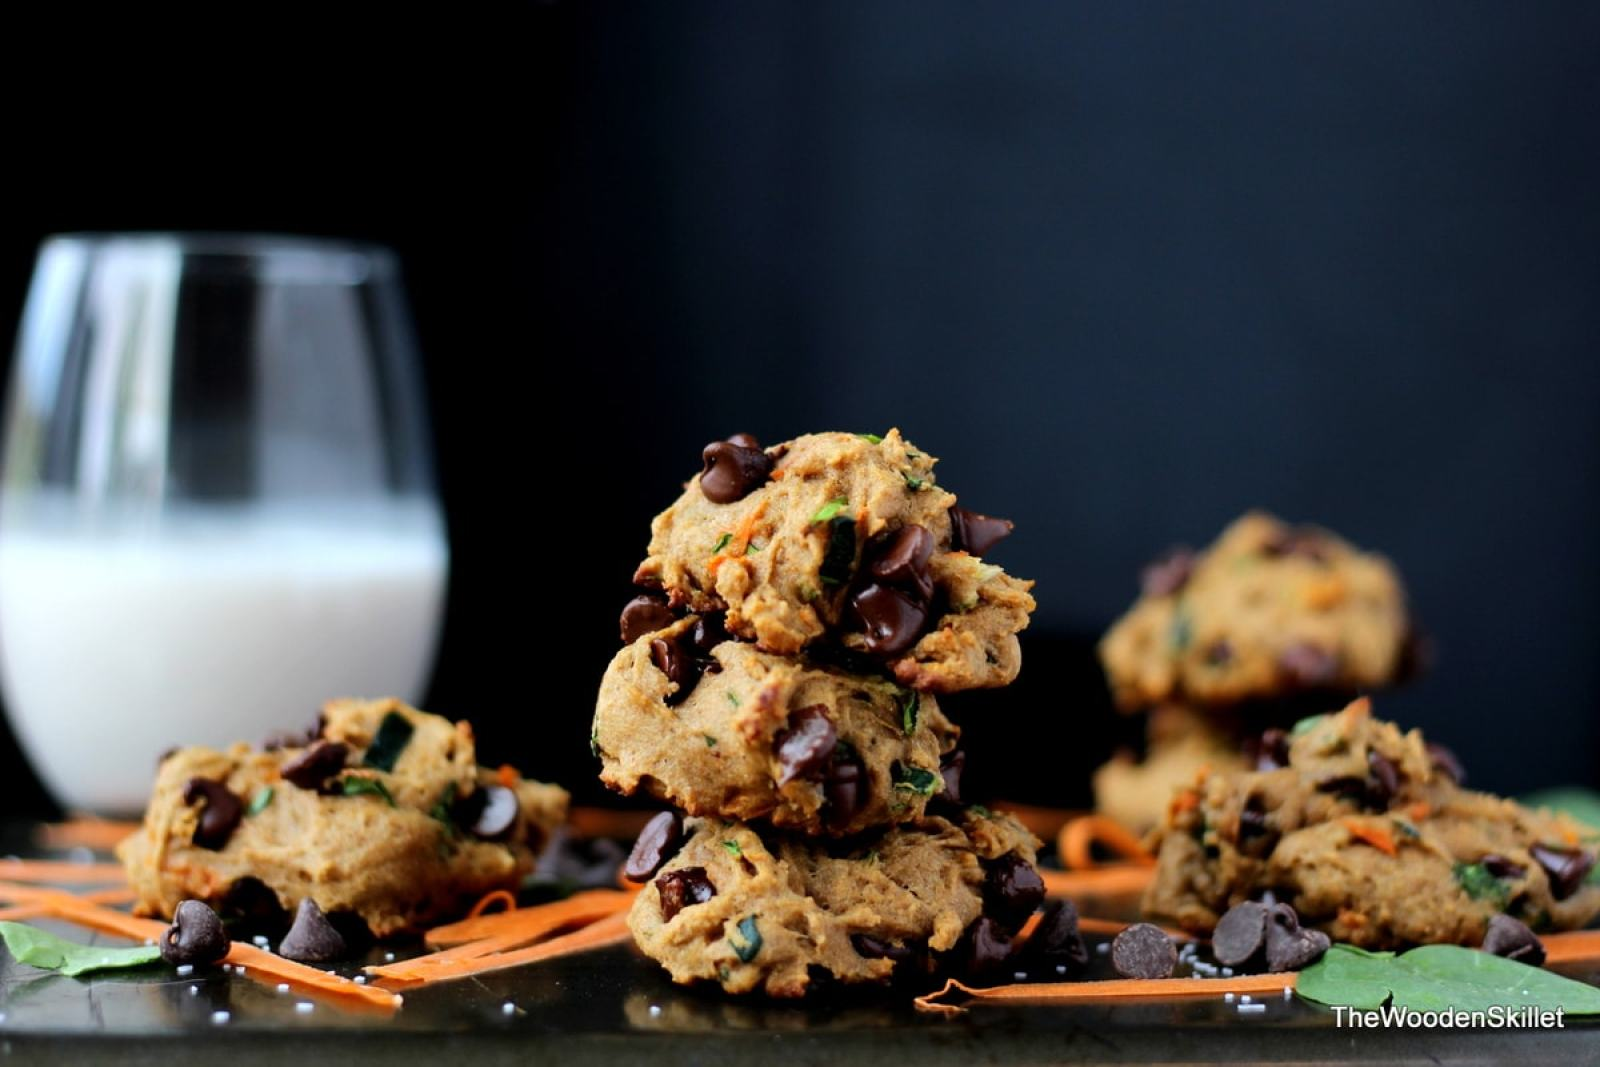 Healthy Chocolate Chip Cookies with Spinach, Zucchini and Carrots - They are healthy and kid-friendly! thewoodenskillet.com #healthycookies